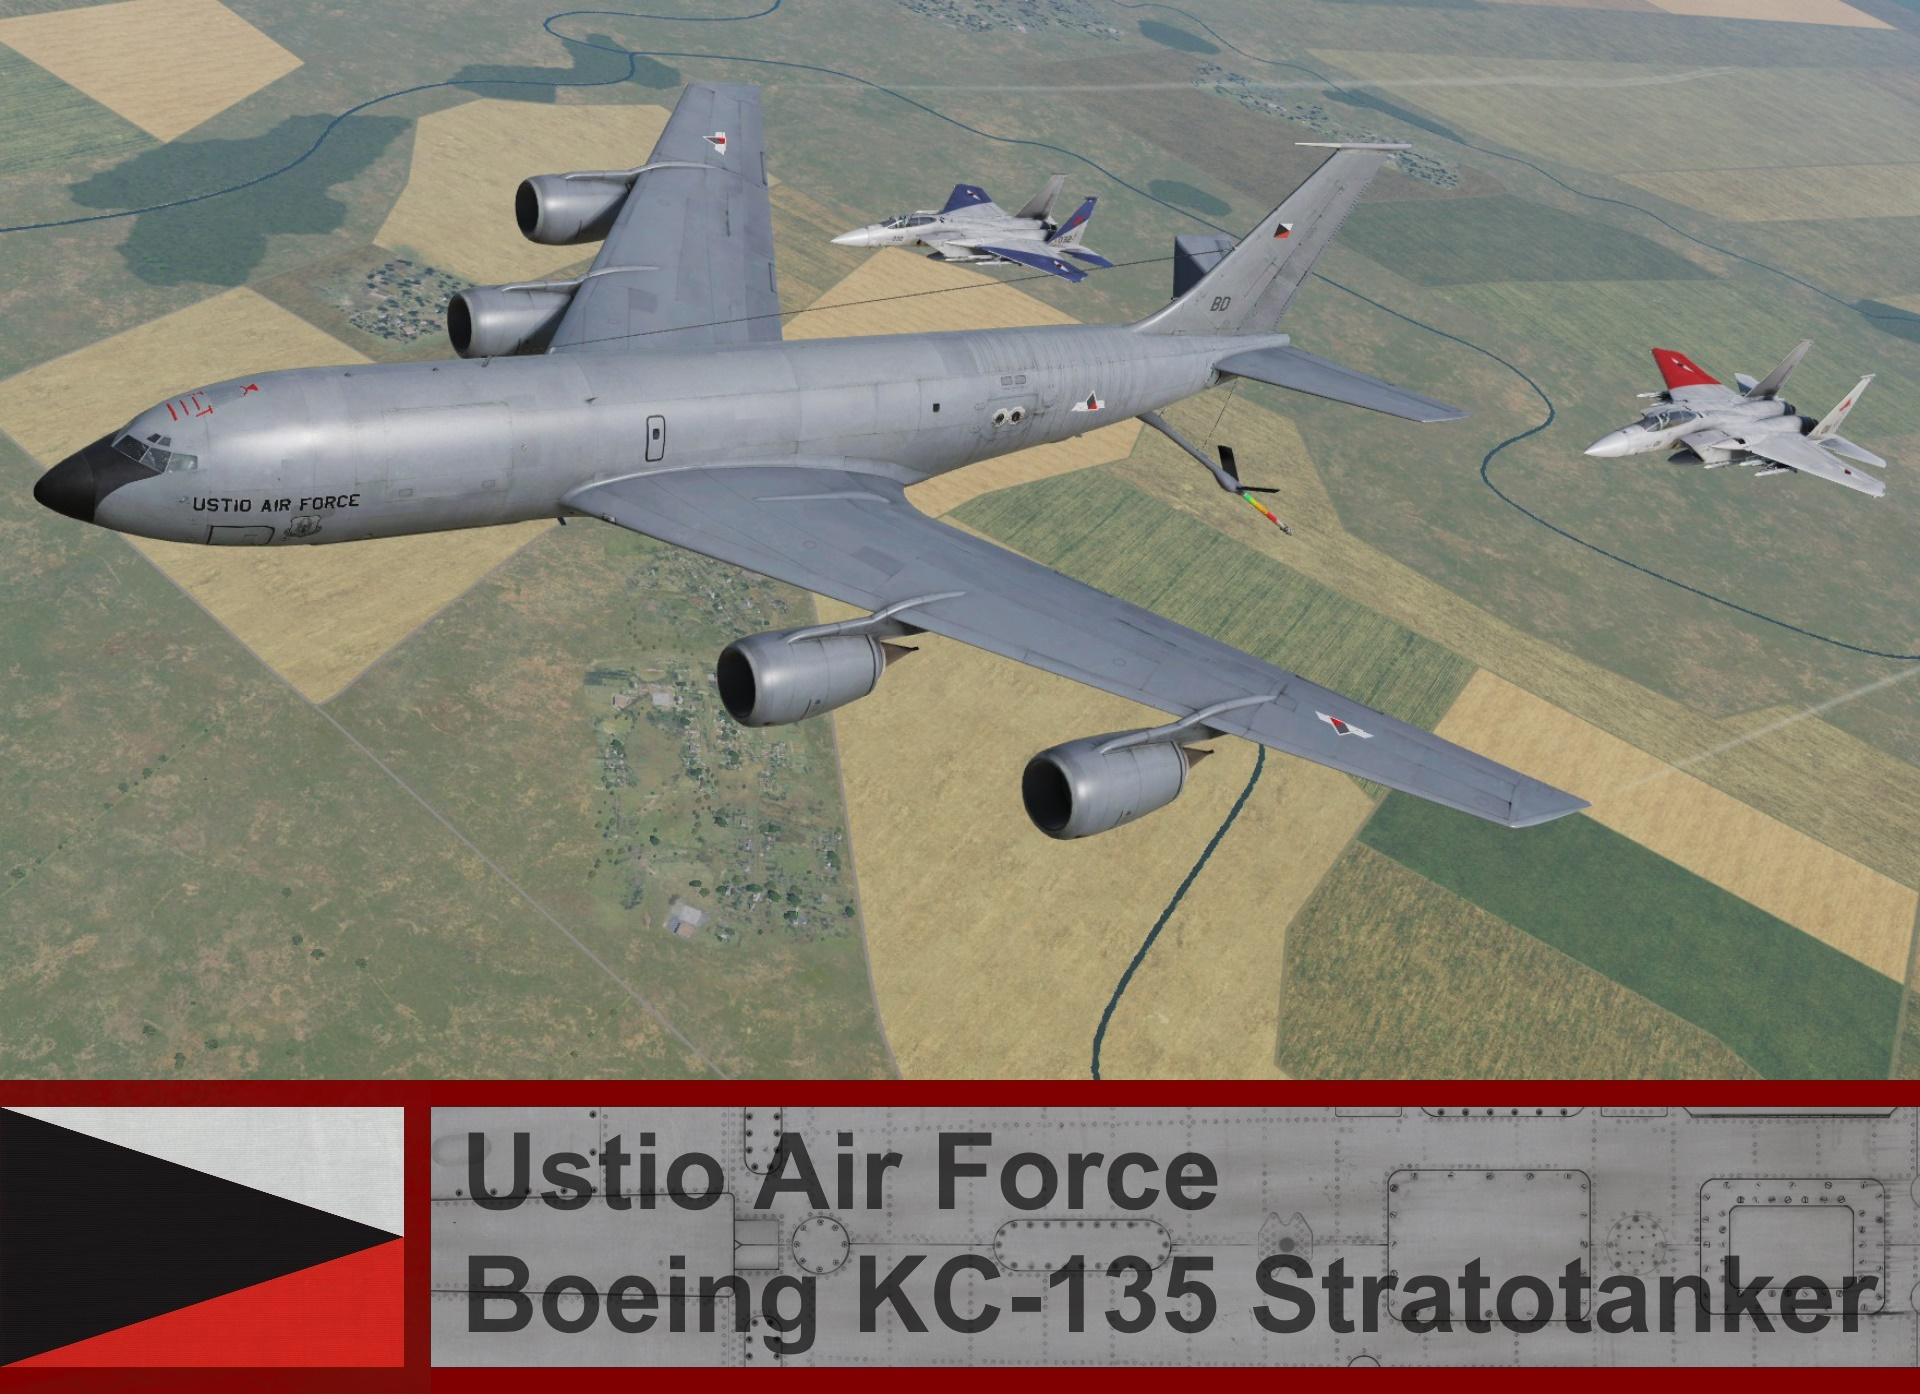 Ustio Air Force Boeing KC-135 Stratotanker  - Ace Combat Zero